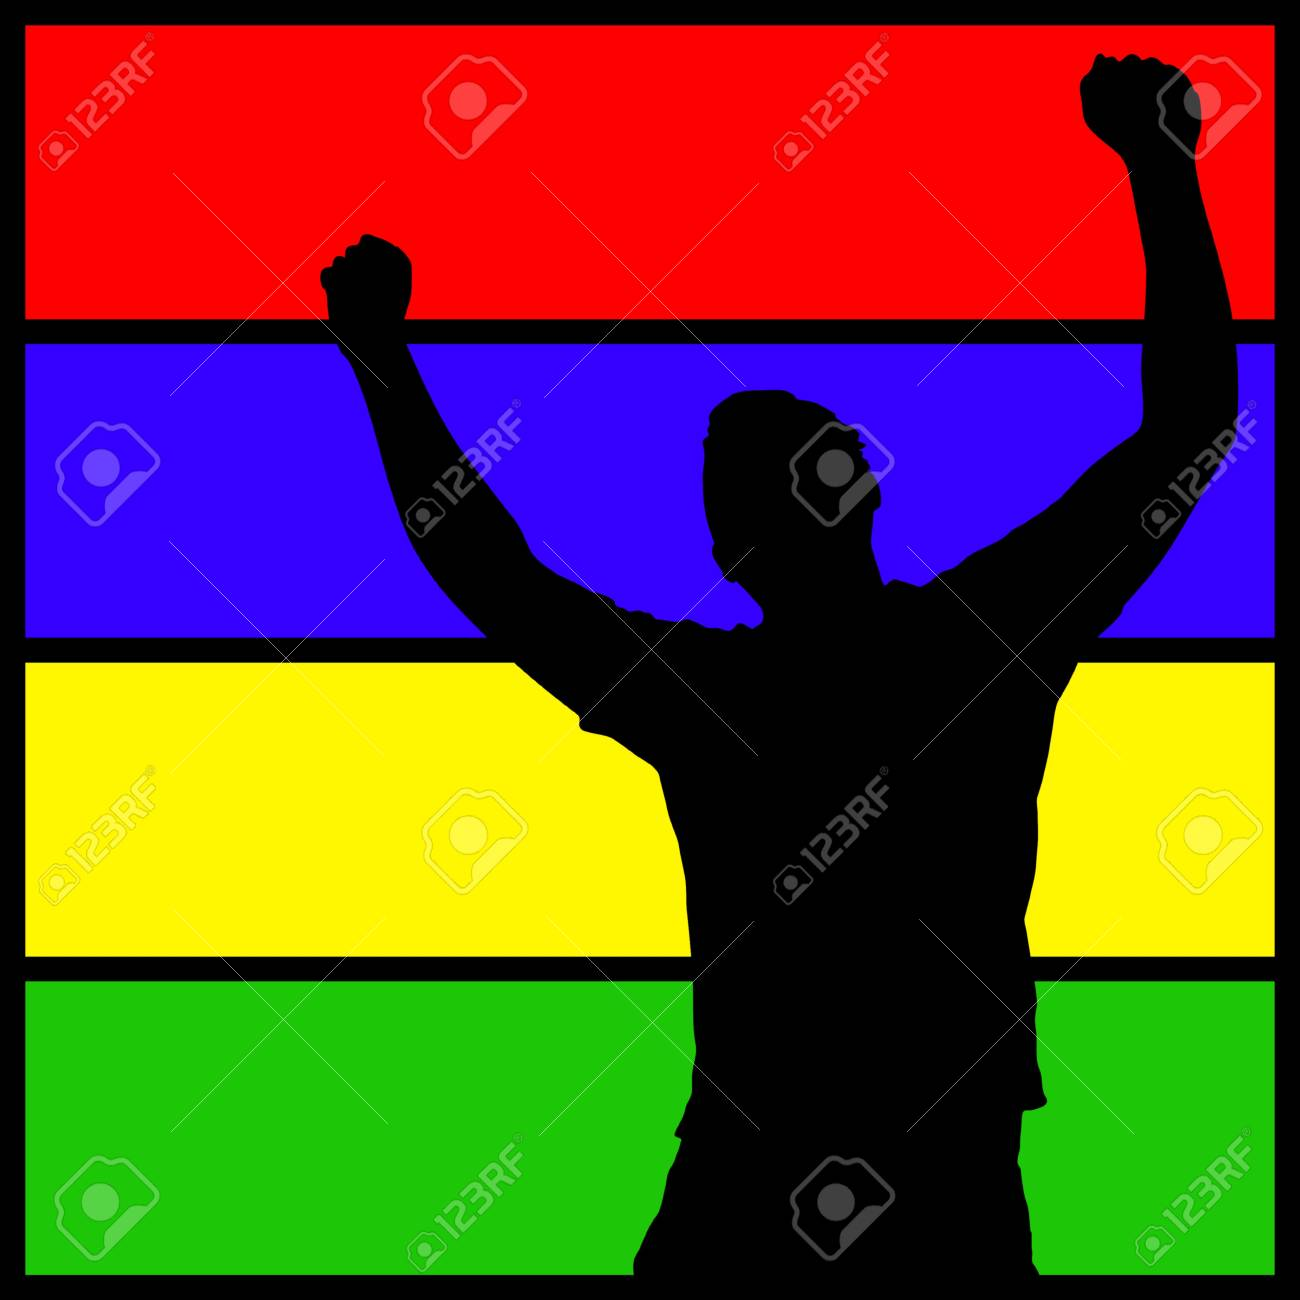 A silhouette of a man with his arms in the air over a colorful background. Stock Photo - 4124771